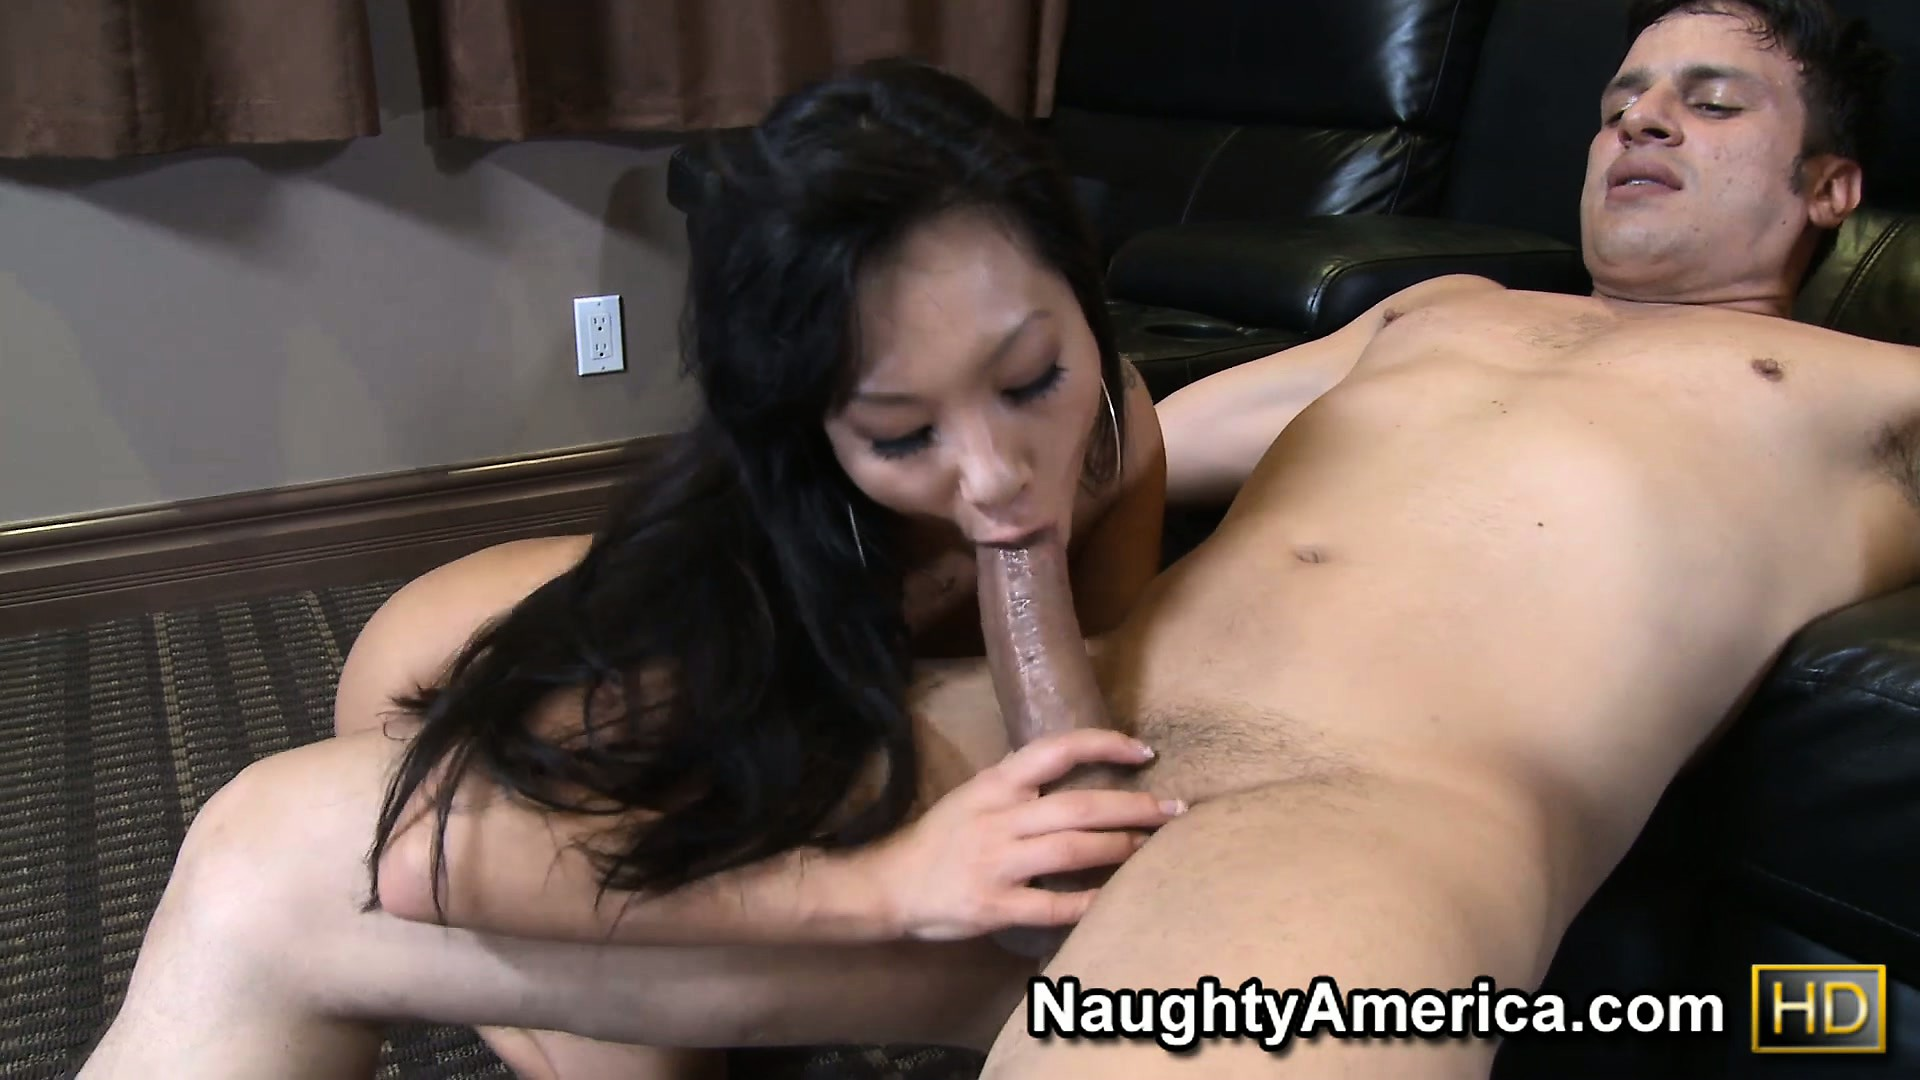 Porno Video of Asa Akira Breaks A Sweat Taming Her Co-star's Mighty Schlong